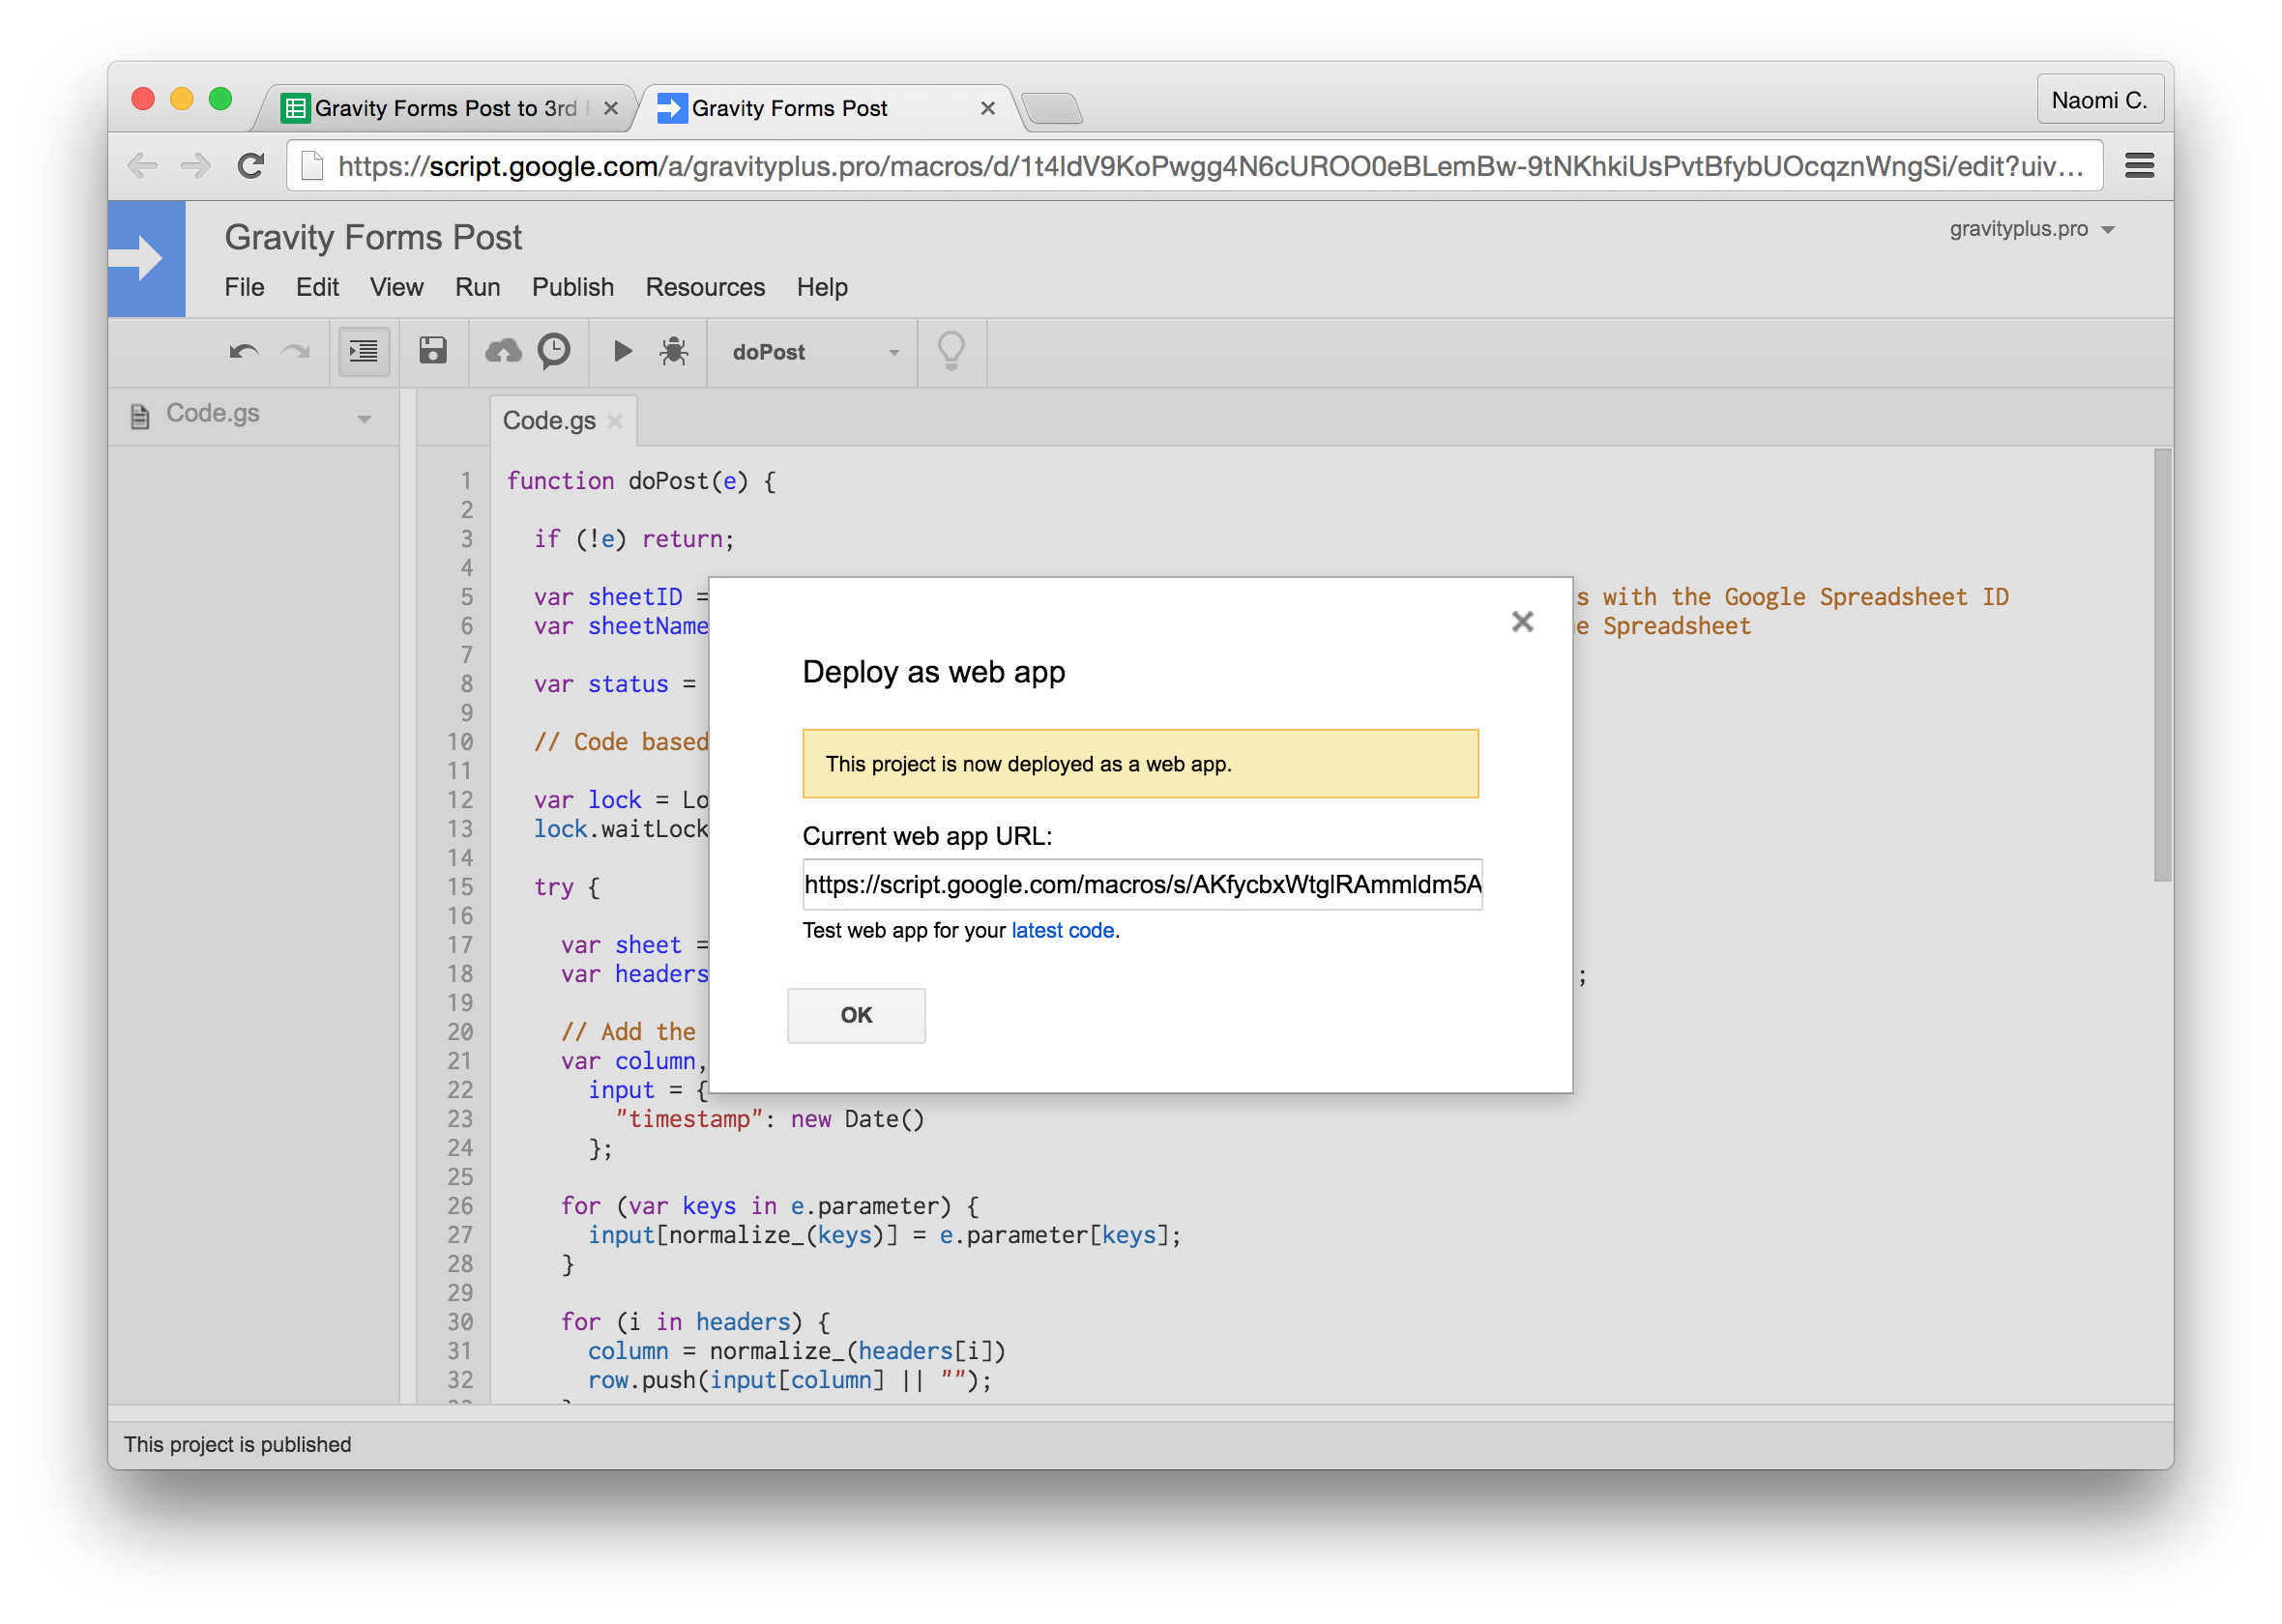 Gravity Forms to Google Sheets project deployed